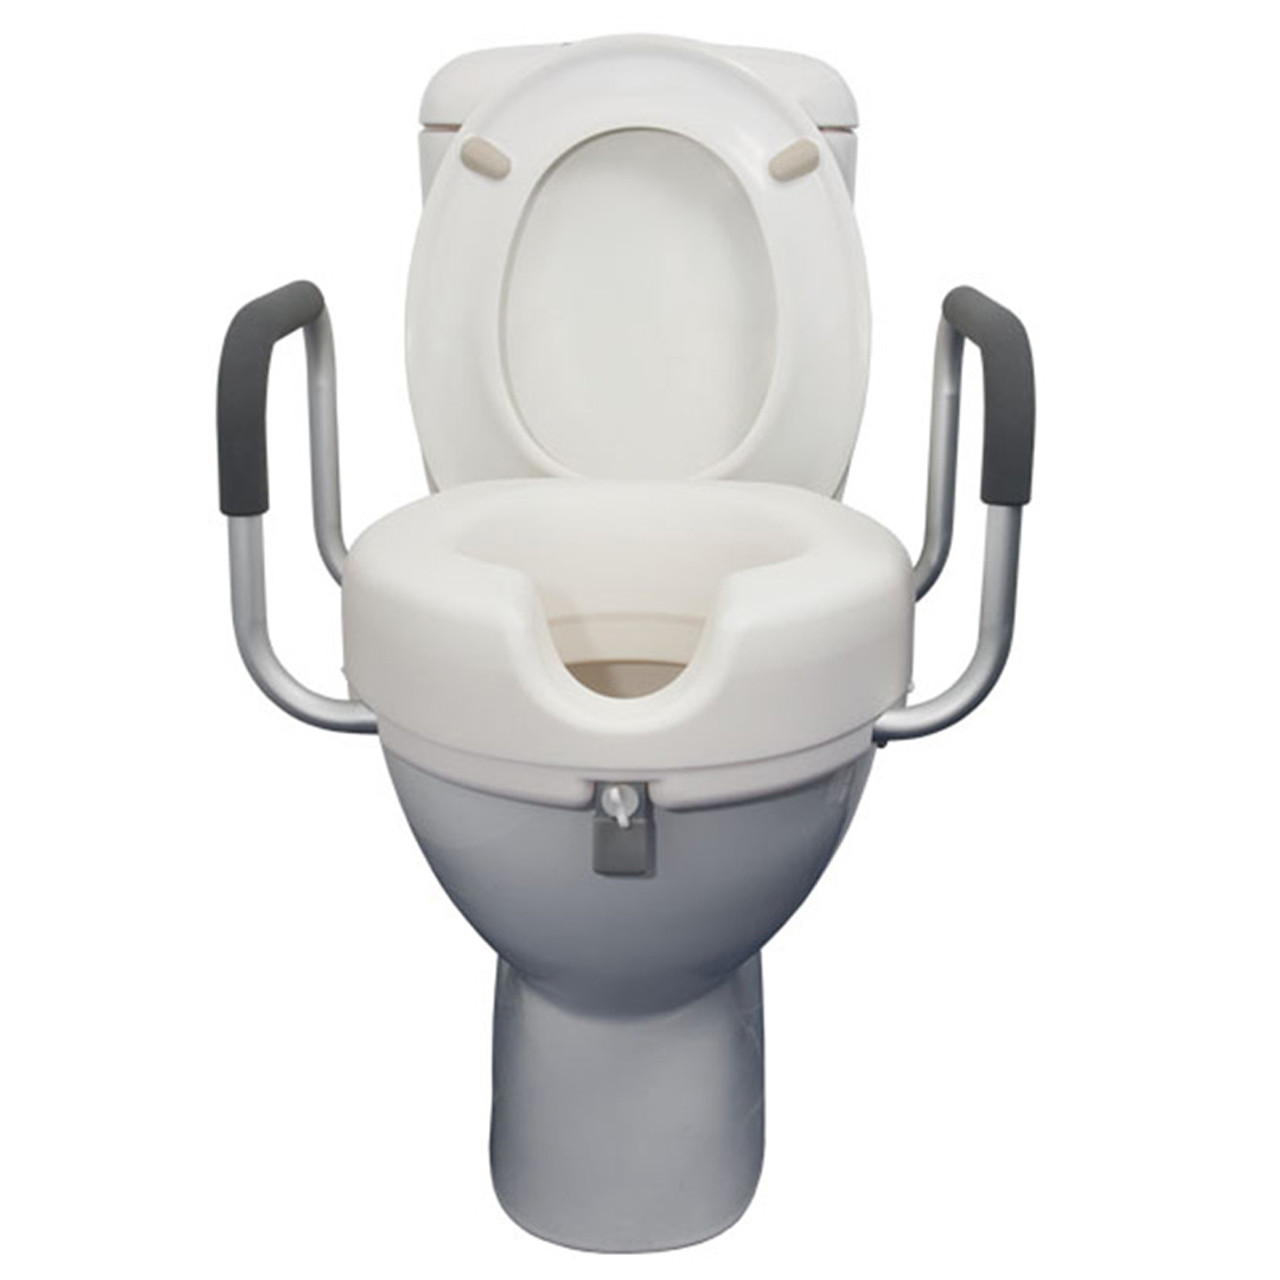 Astounding Raised Toilet Seat With Armrests Gmtry Best Dining Table And Chair Ideas Images Gmtryco